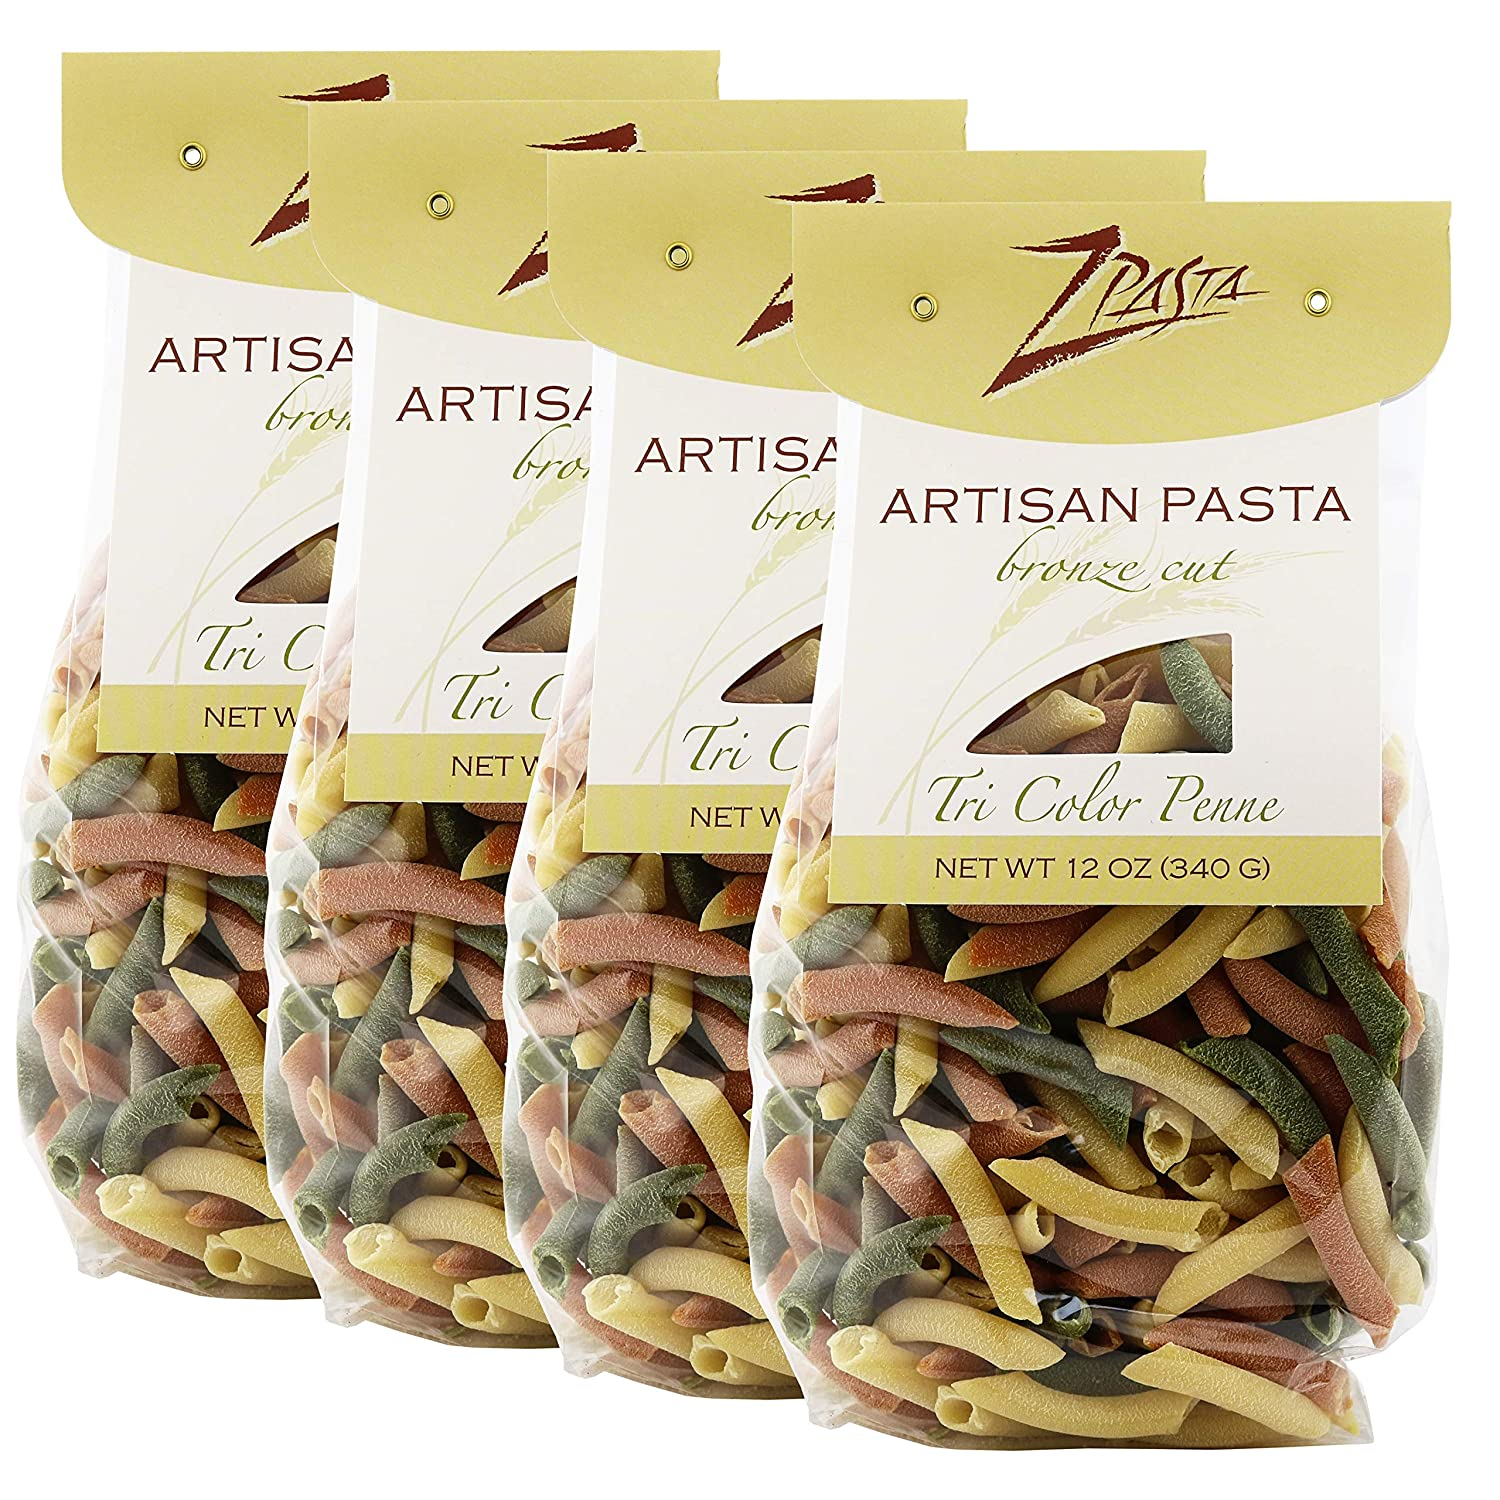 ZPasta Tri Color Penne - Limited Special Price Bronze Cut Max 64% OFF Pasta oz Artisan 12 Pack 4